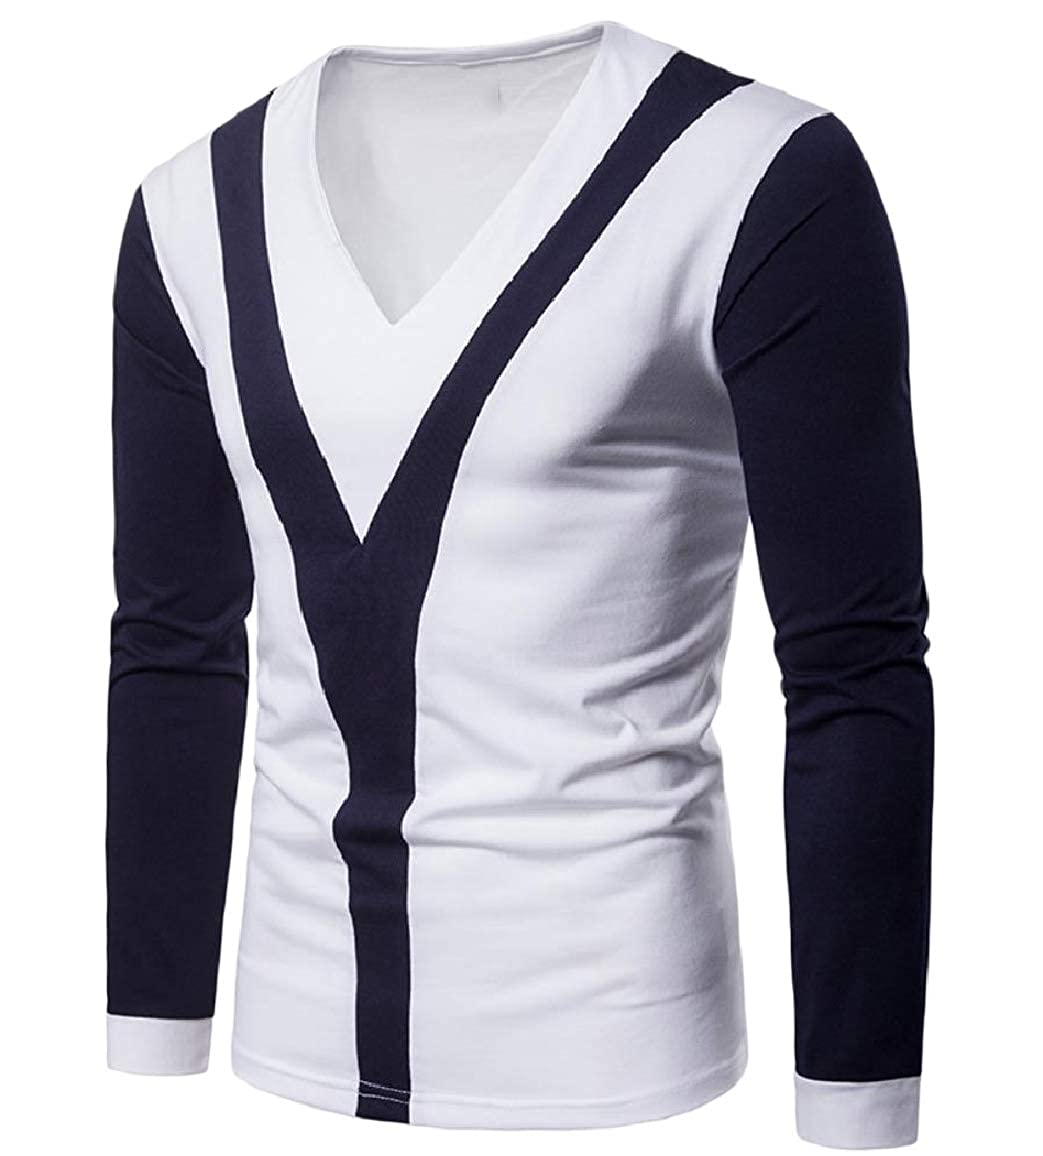 Sebaby Men Stitch Assorted Colors Skinny Long-Sleeve Blouse T-Shirt Tops